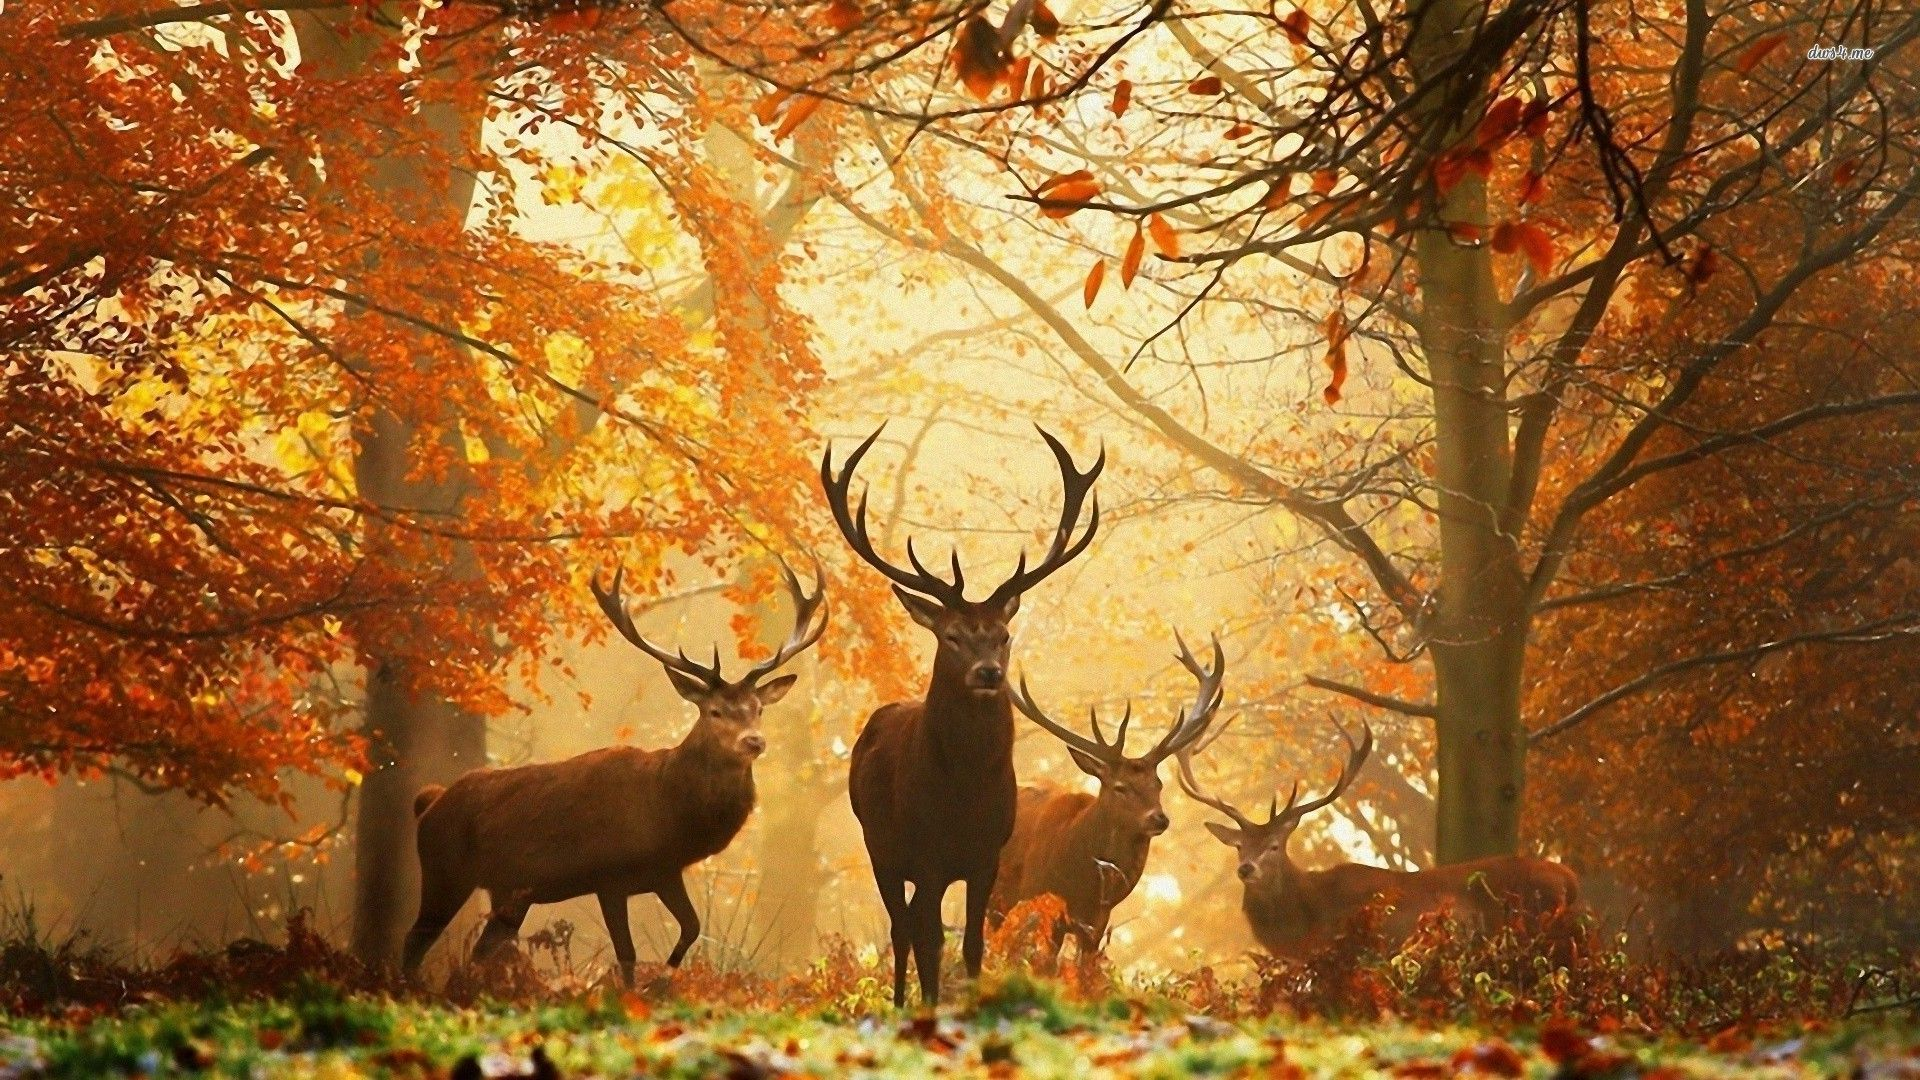 Deers In The Autumn Forest Hd Wallpaper Animal Wallpaper Autumn Forest Fall Wallpaper